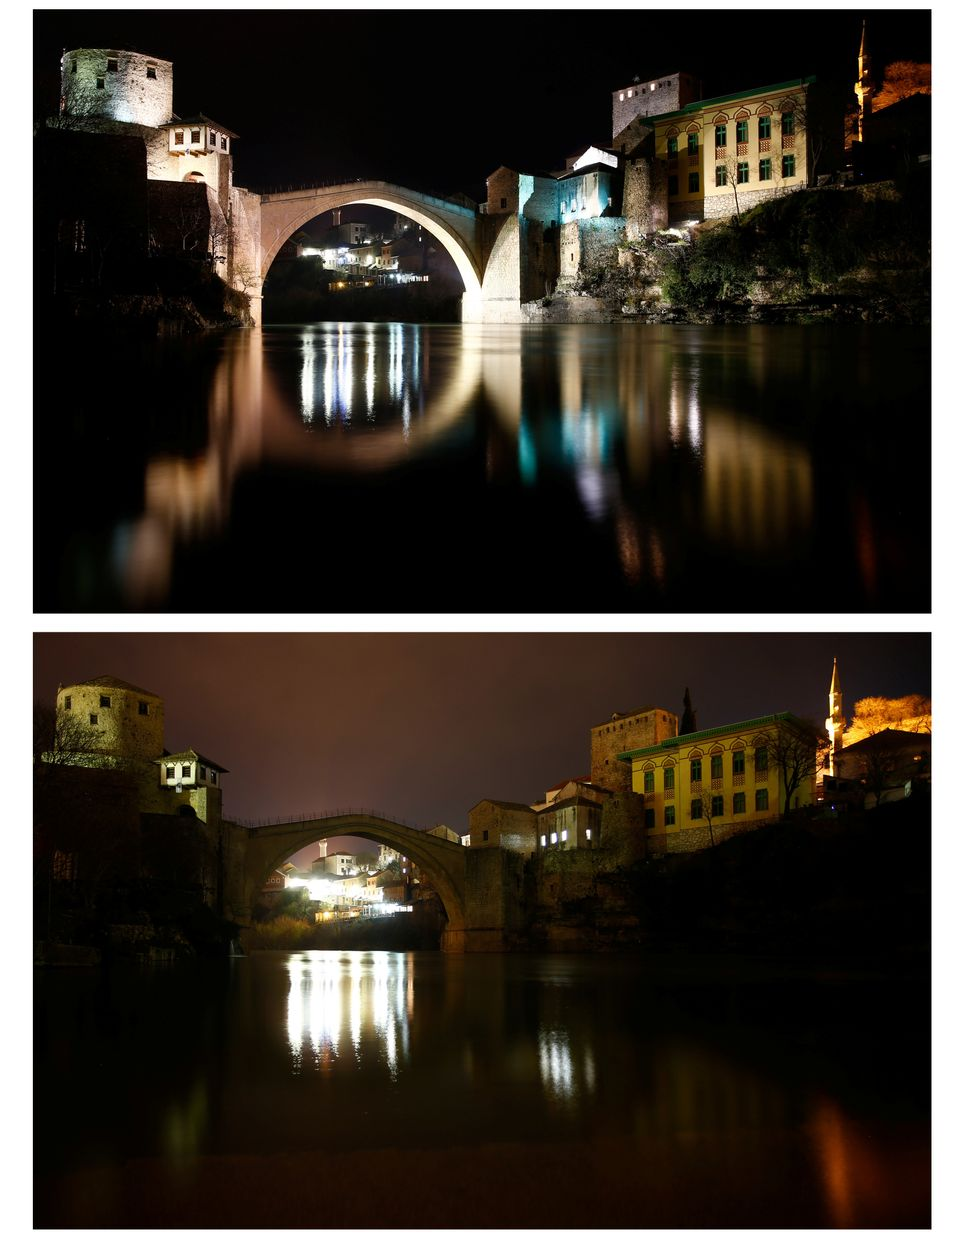 The Old Bridge in Mostar, Bosnia and Herzegovina, before (top) and during (bottom) Earth Hour.